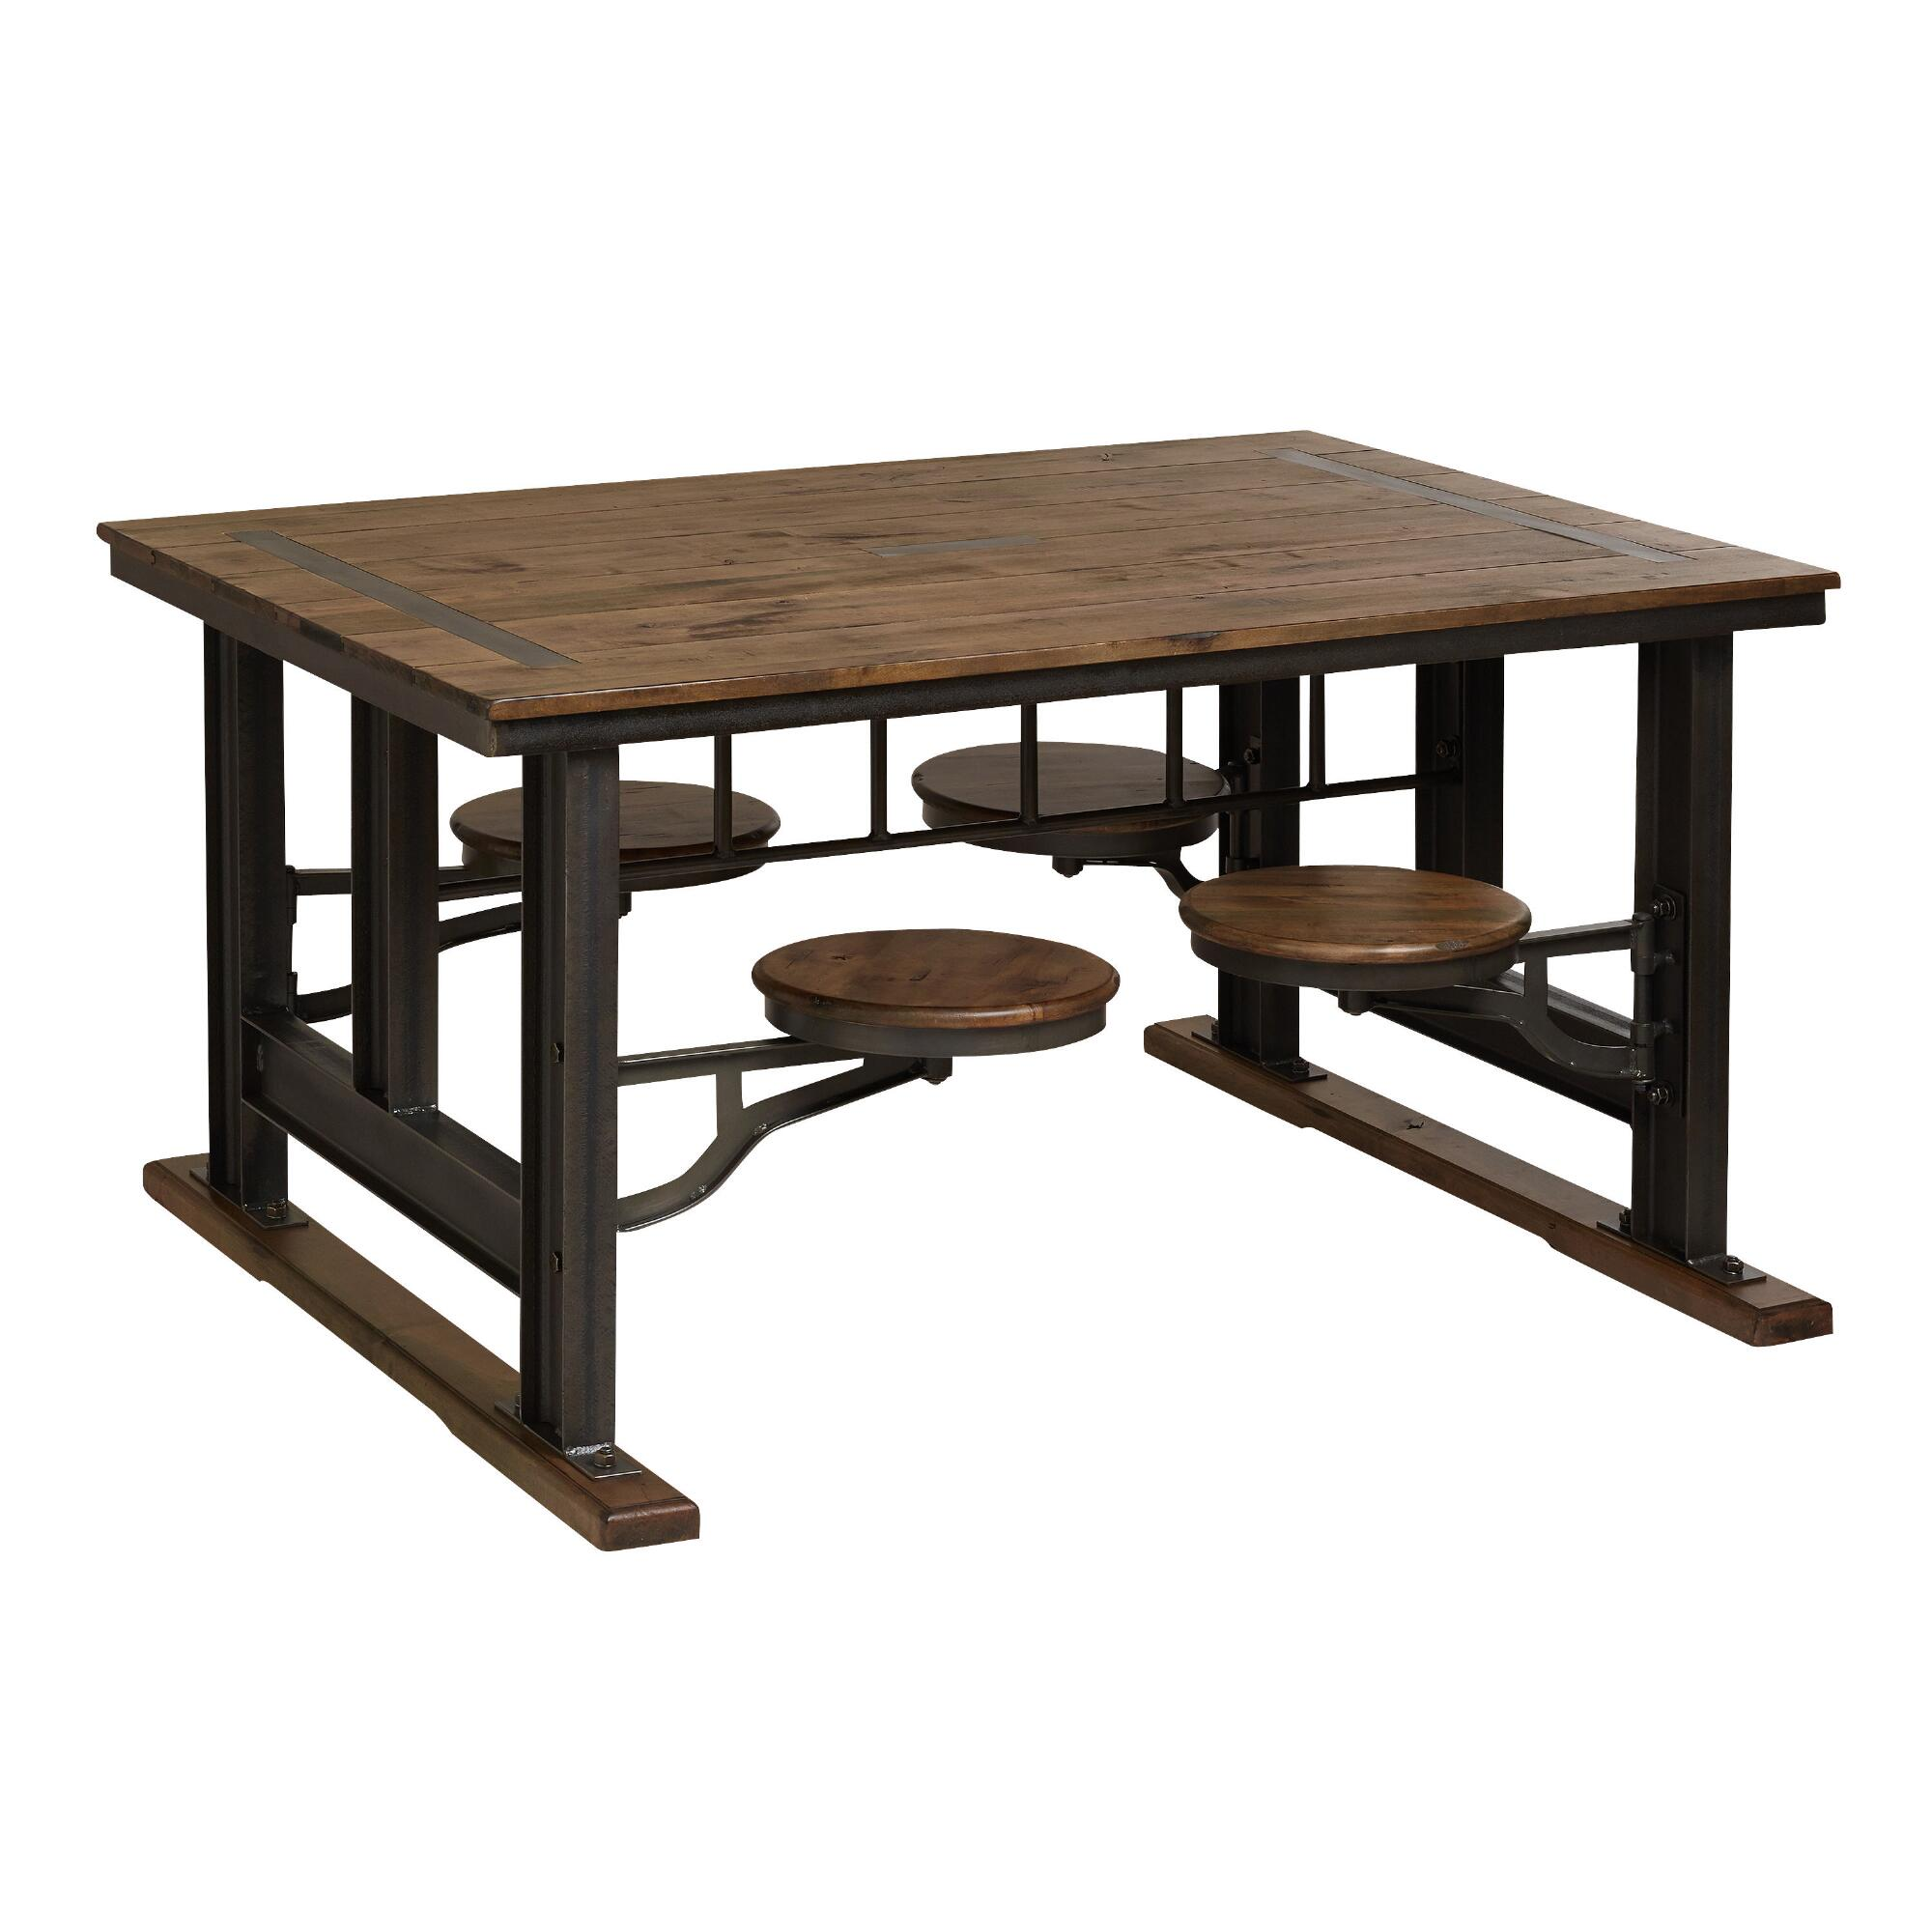 Wood and metal kenway laptop table furthermore Butlers Pantry Makeover 2 likewise Galvin cafeteria table further Cretacolor Fine Art Graphite Pencils also Hudson counter stool. on world market desk chair